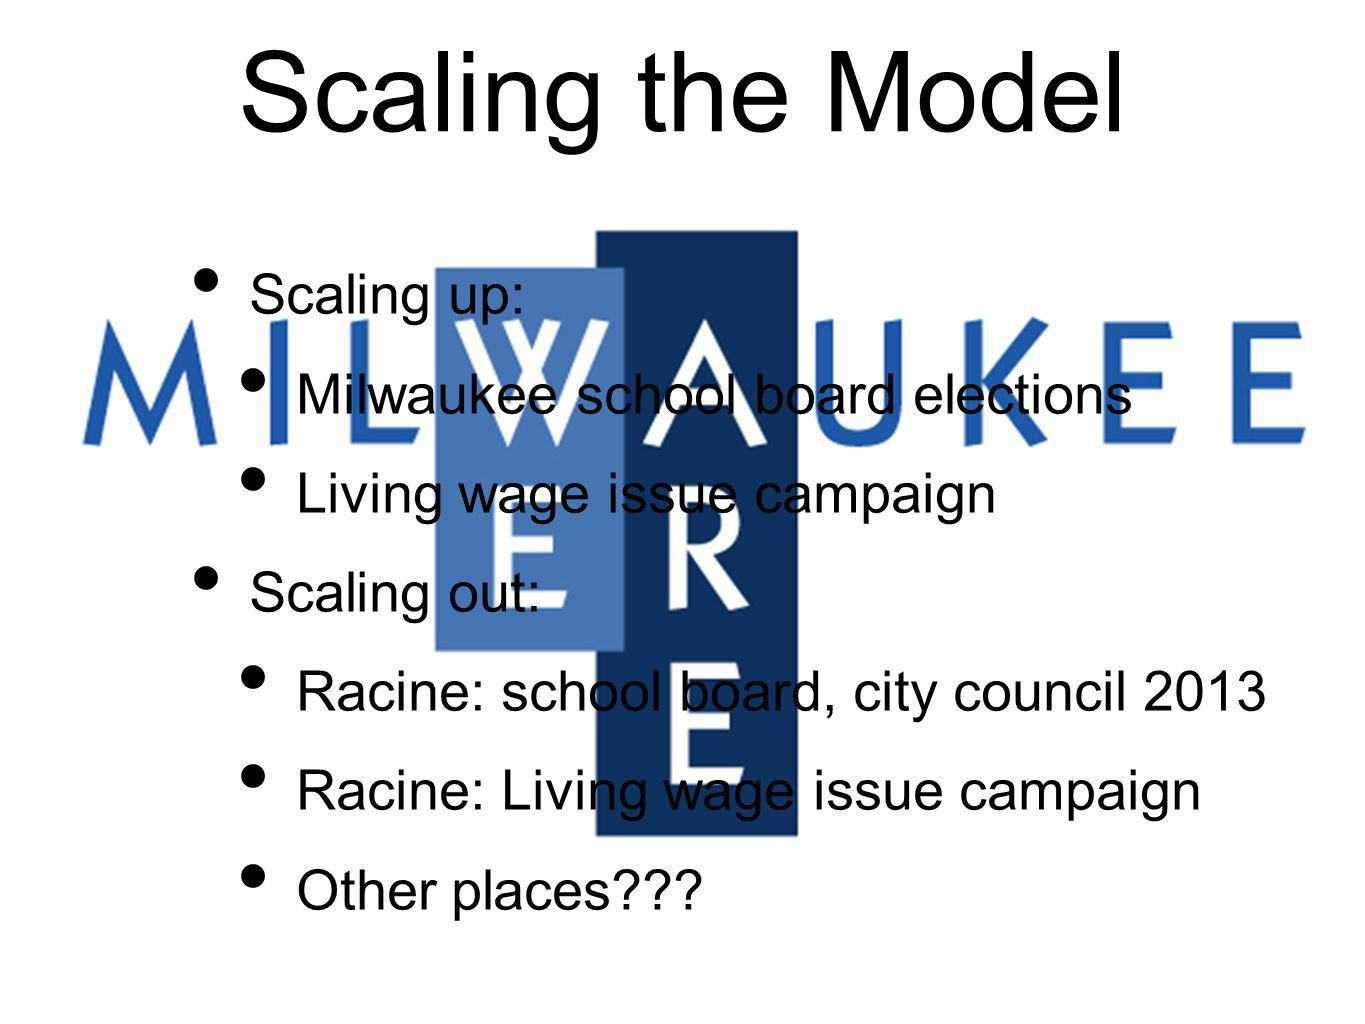 Scaling the Model Scaling up: Milwaukee school board elections Living wage issue campaign Scaling out: Racine: school board, city council 2013 Racine: